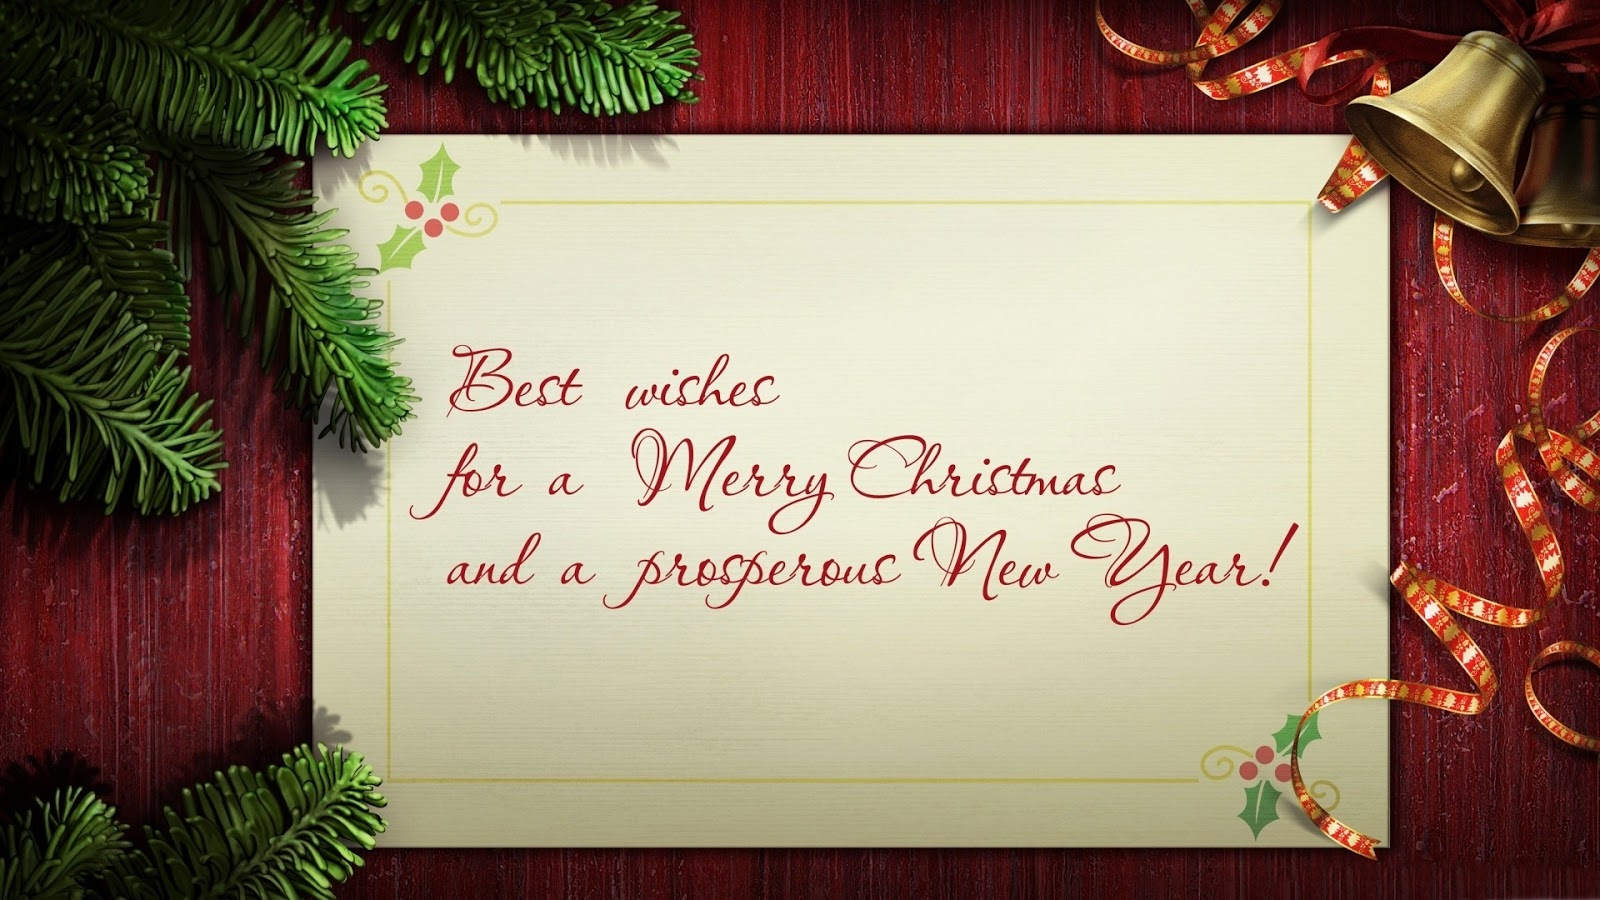 Merry Christmas Wishes 25 Awesome Christmas Greeting Cards